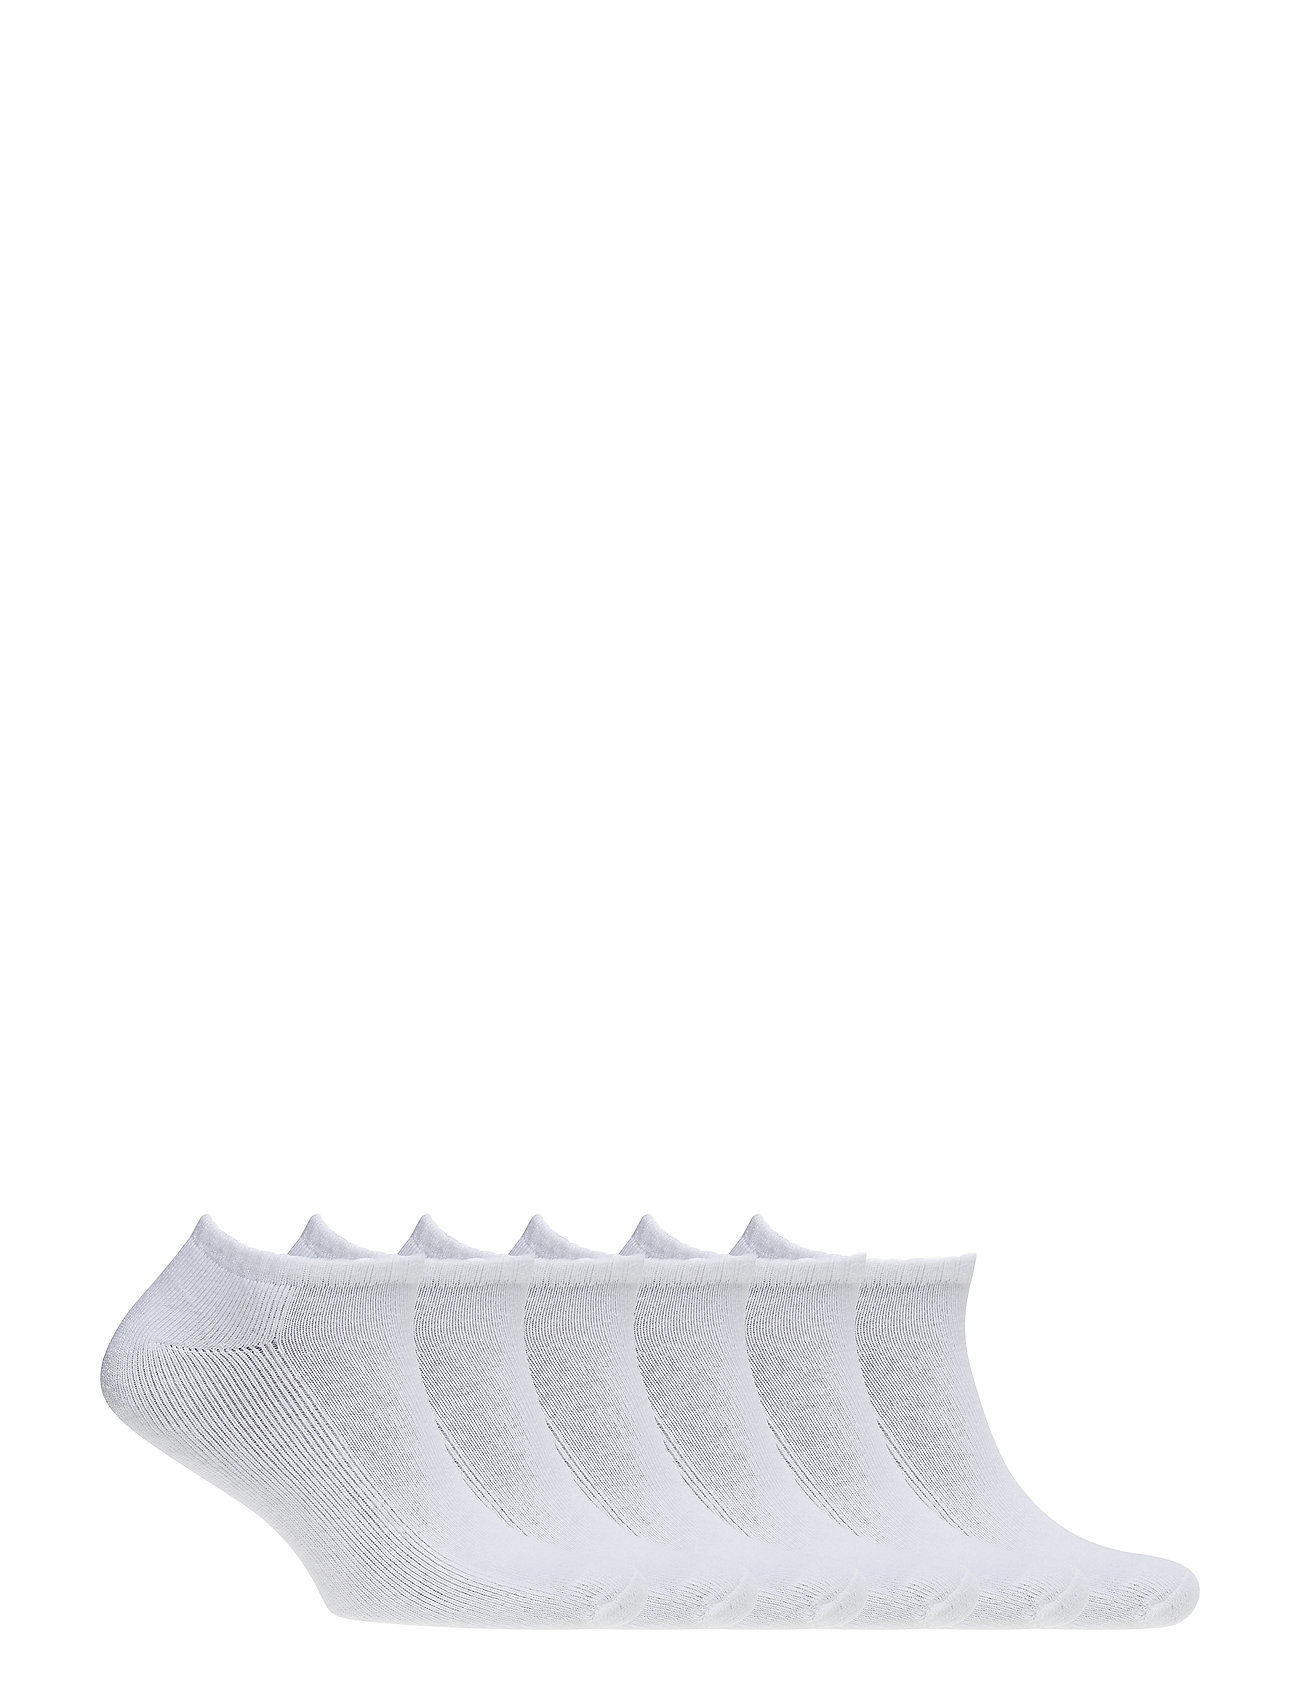 Polo Ralph Lauren 6PK LC PP-SOCKS-6 PACK - WHITE